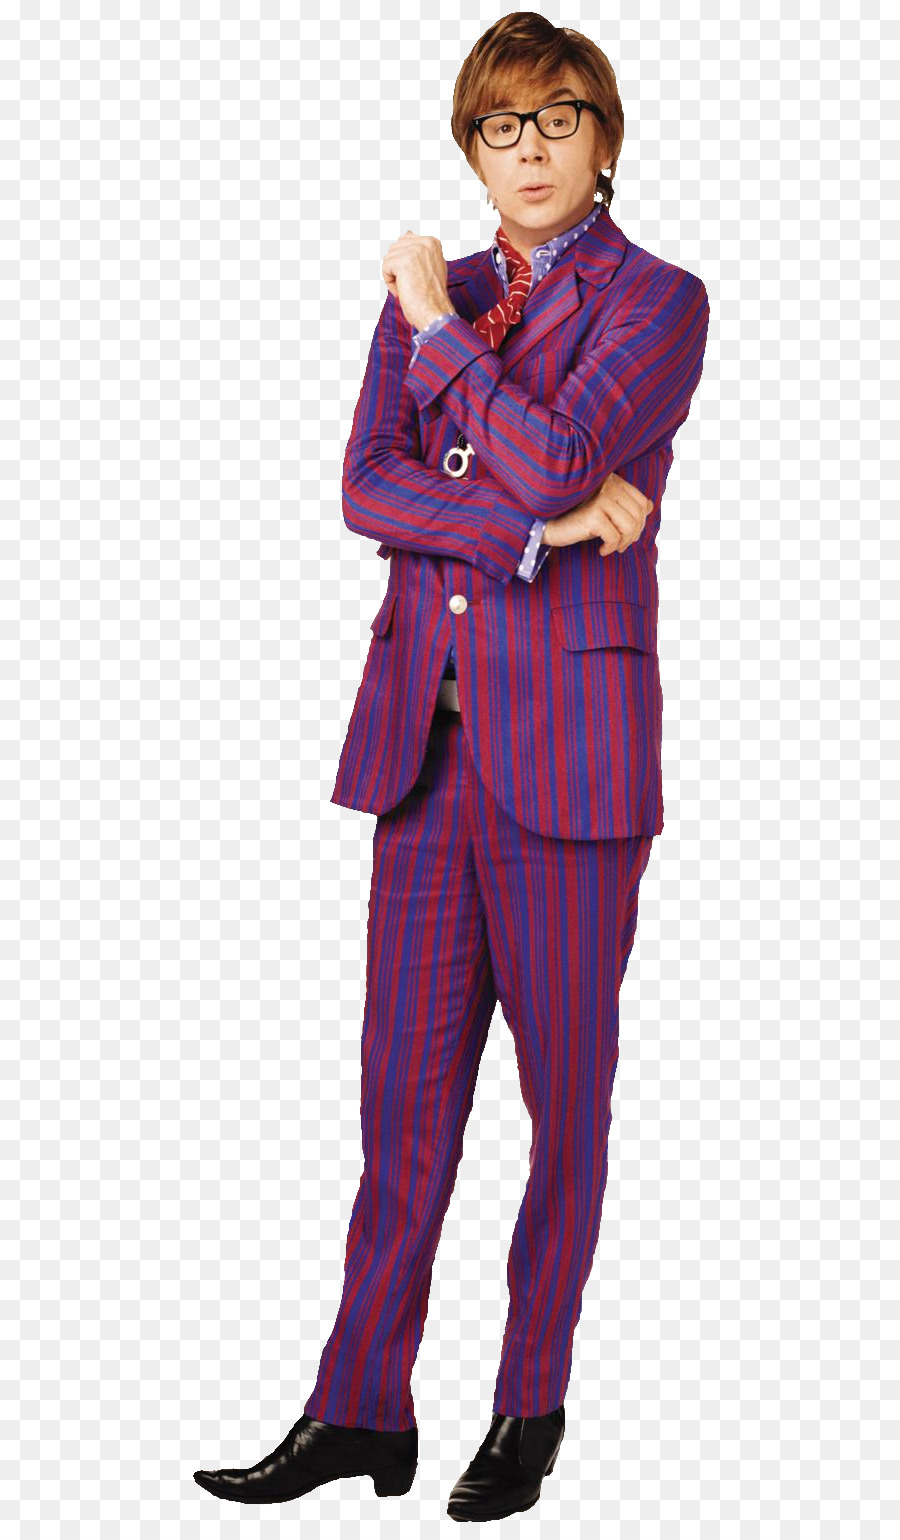 Austin Powers Png & Free Austin Powers.png Transparent.